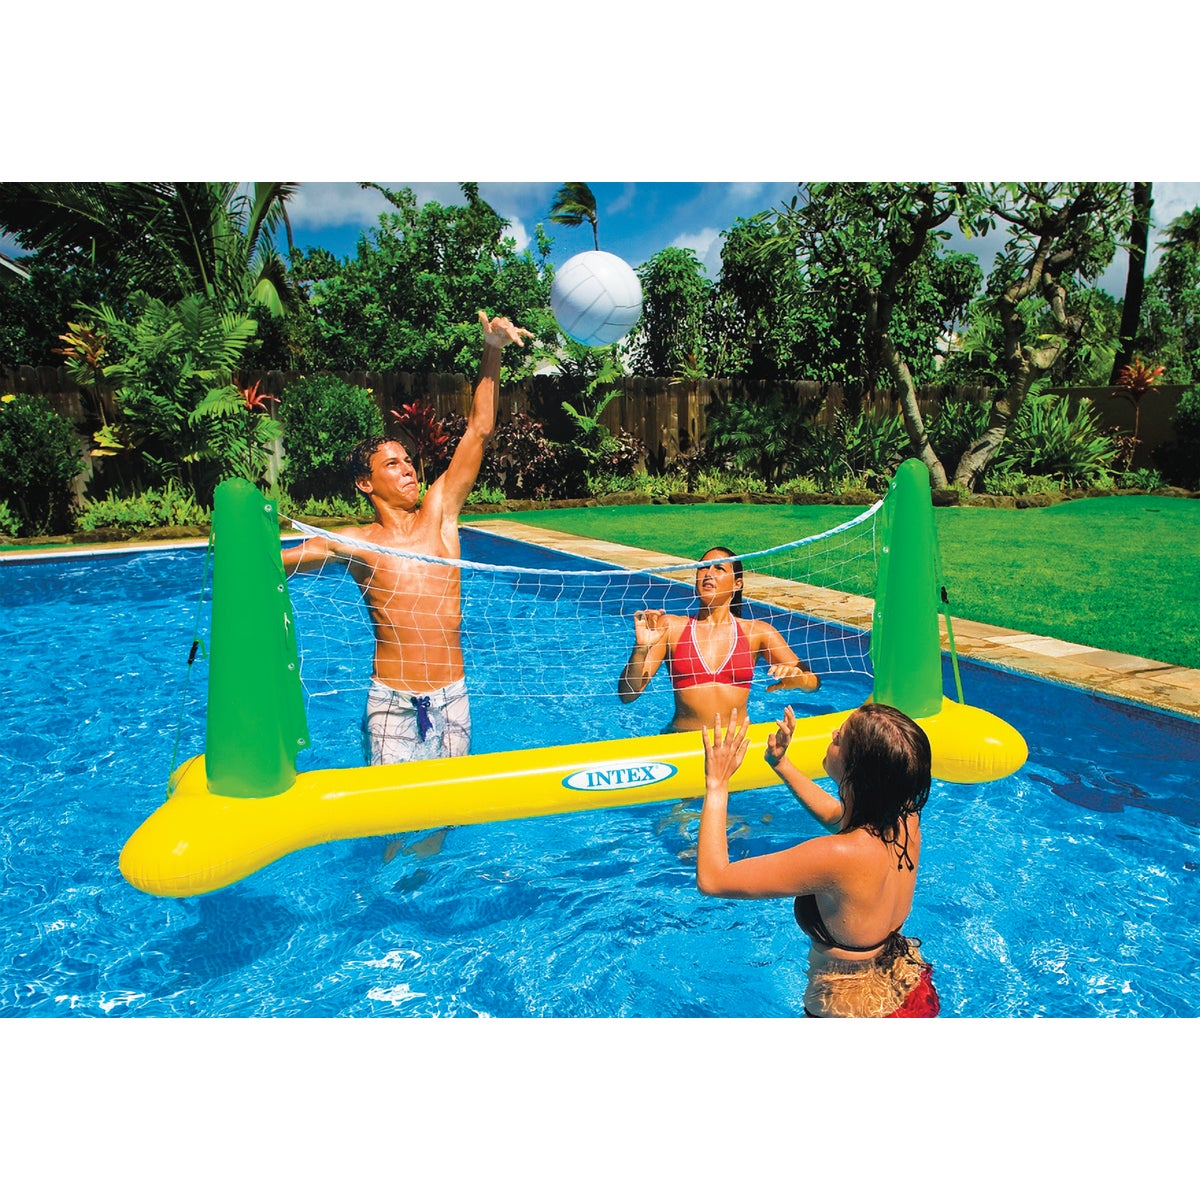 POOL VOLLEYBALL - 56508EP by Intex Recreation